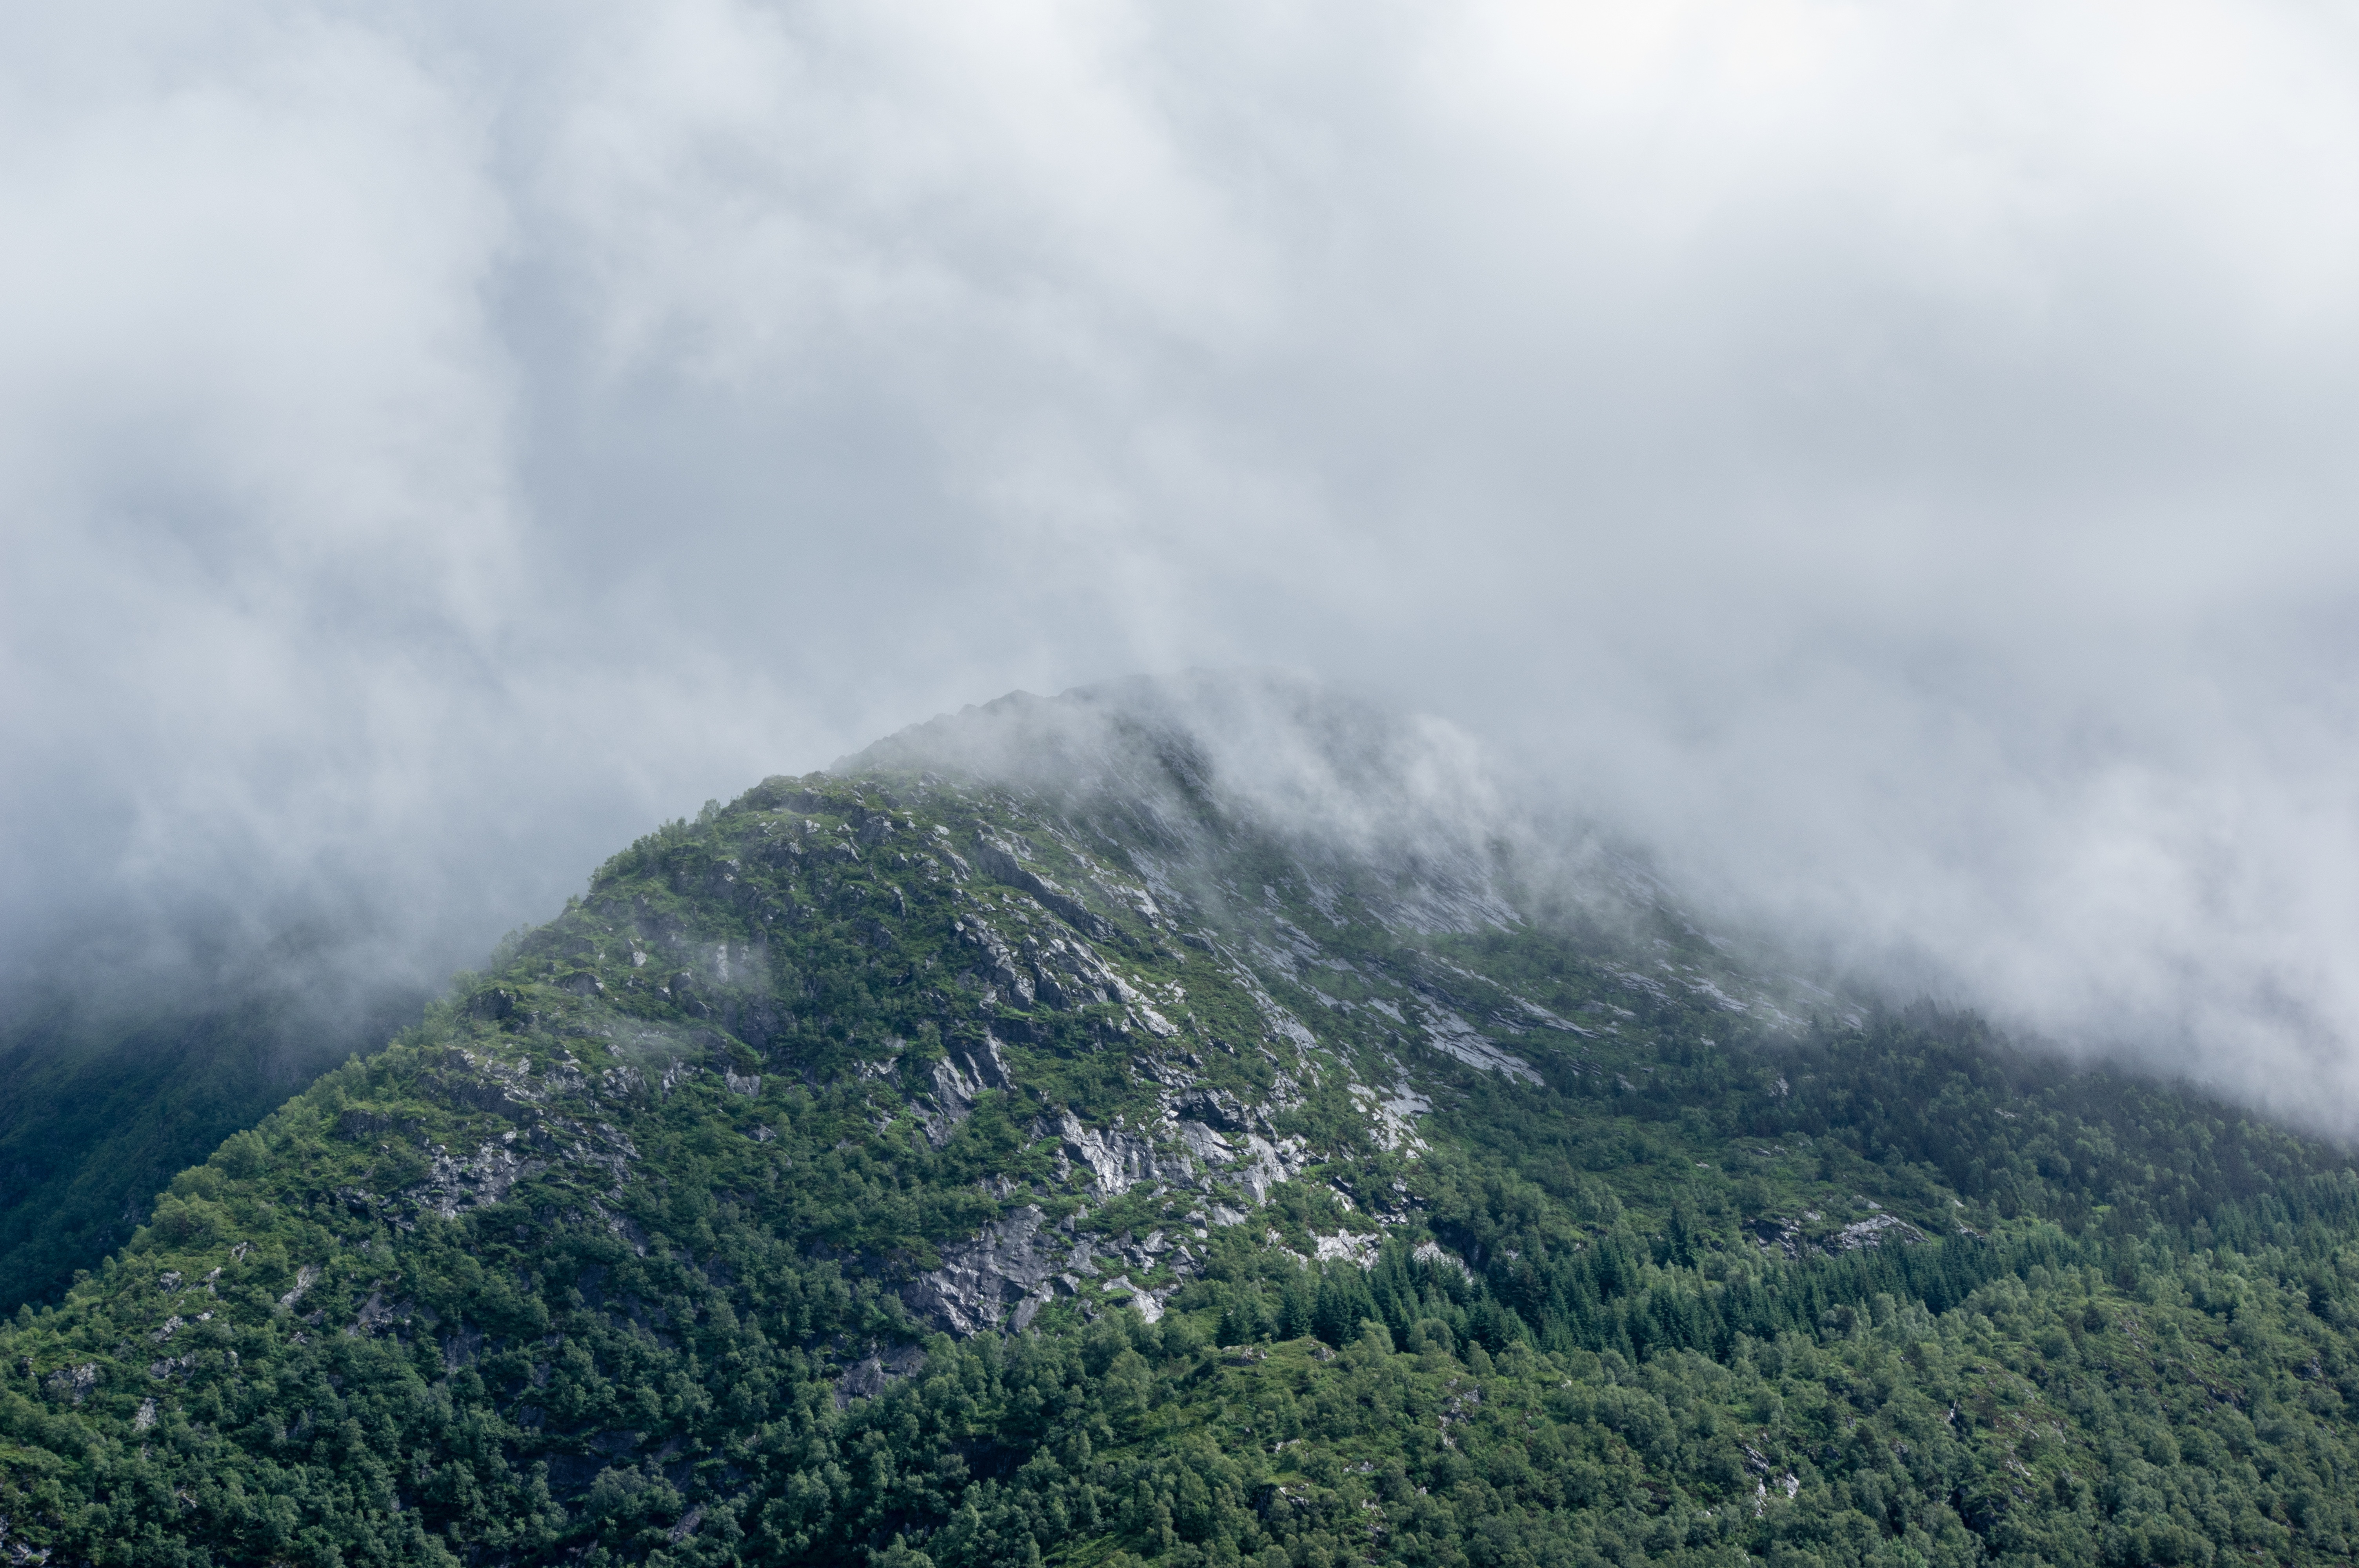 Cloudy Mountain, Altitude, Cloud, Cloudy, Forest, HQ Photo